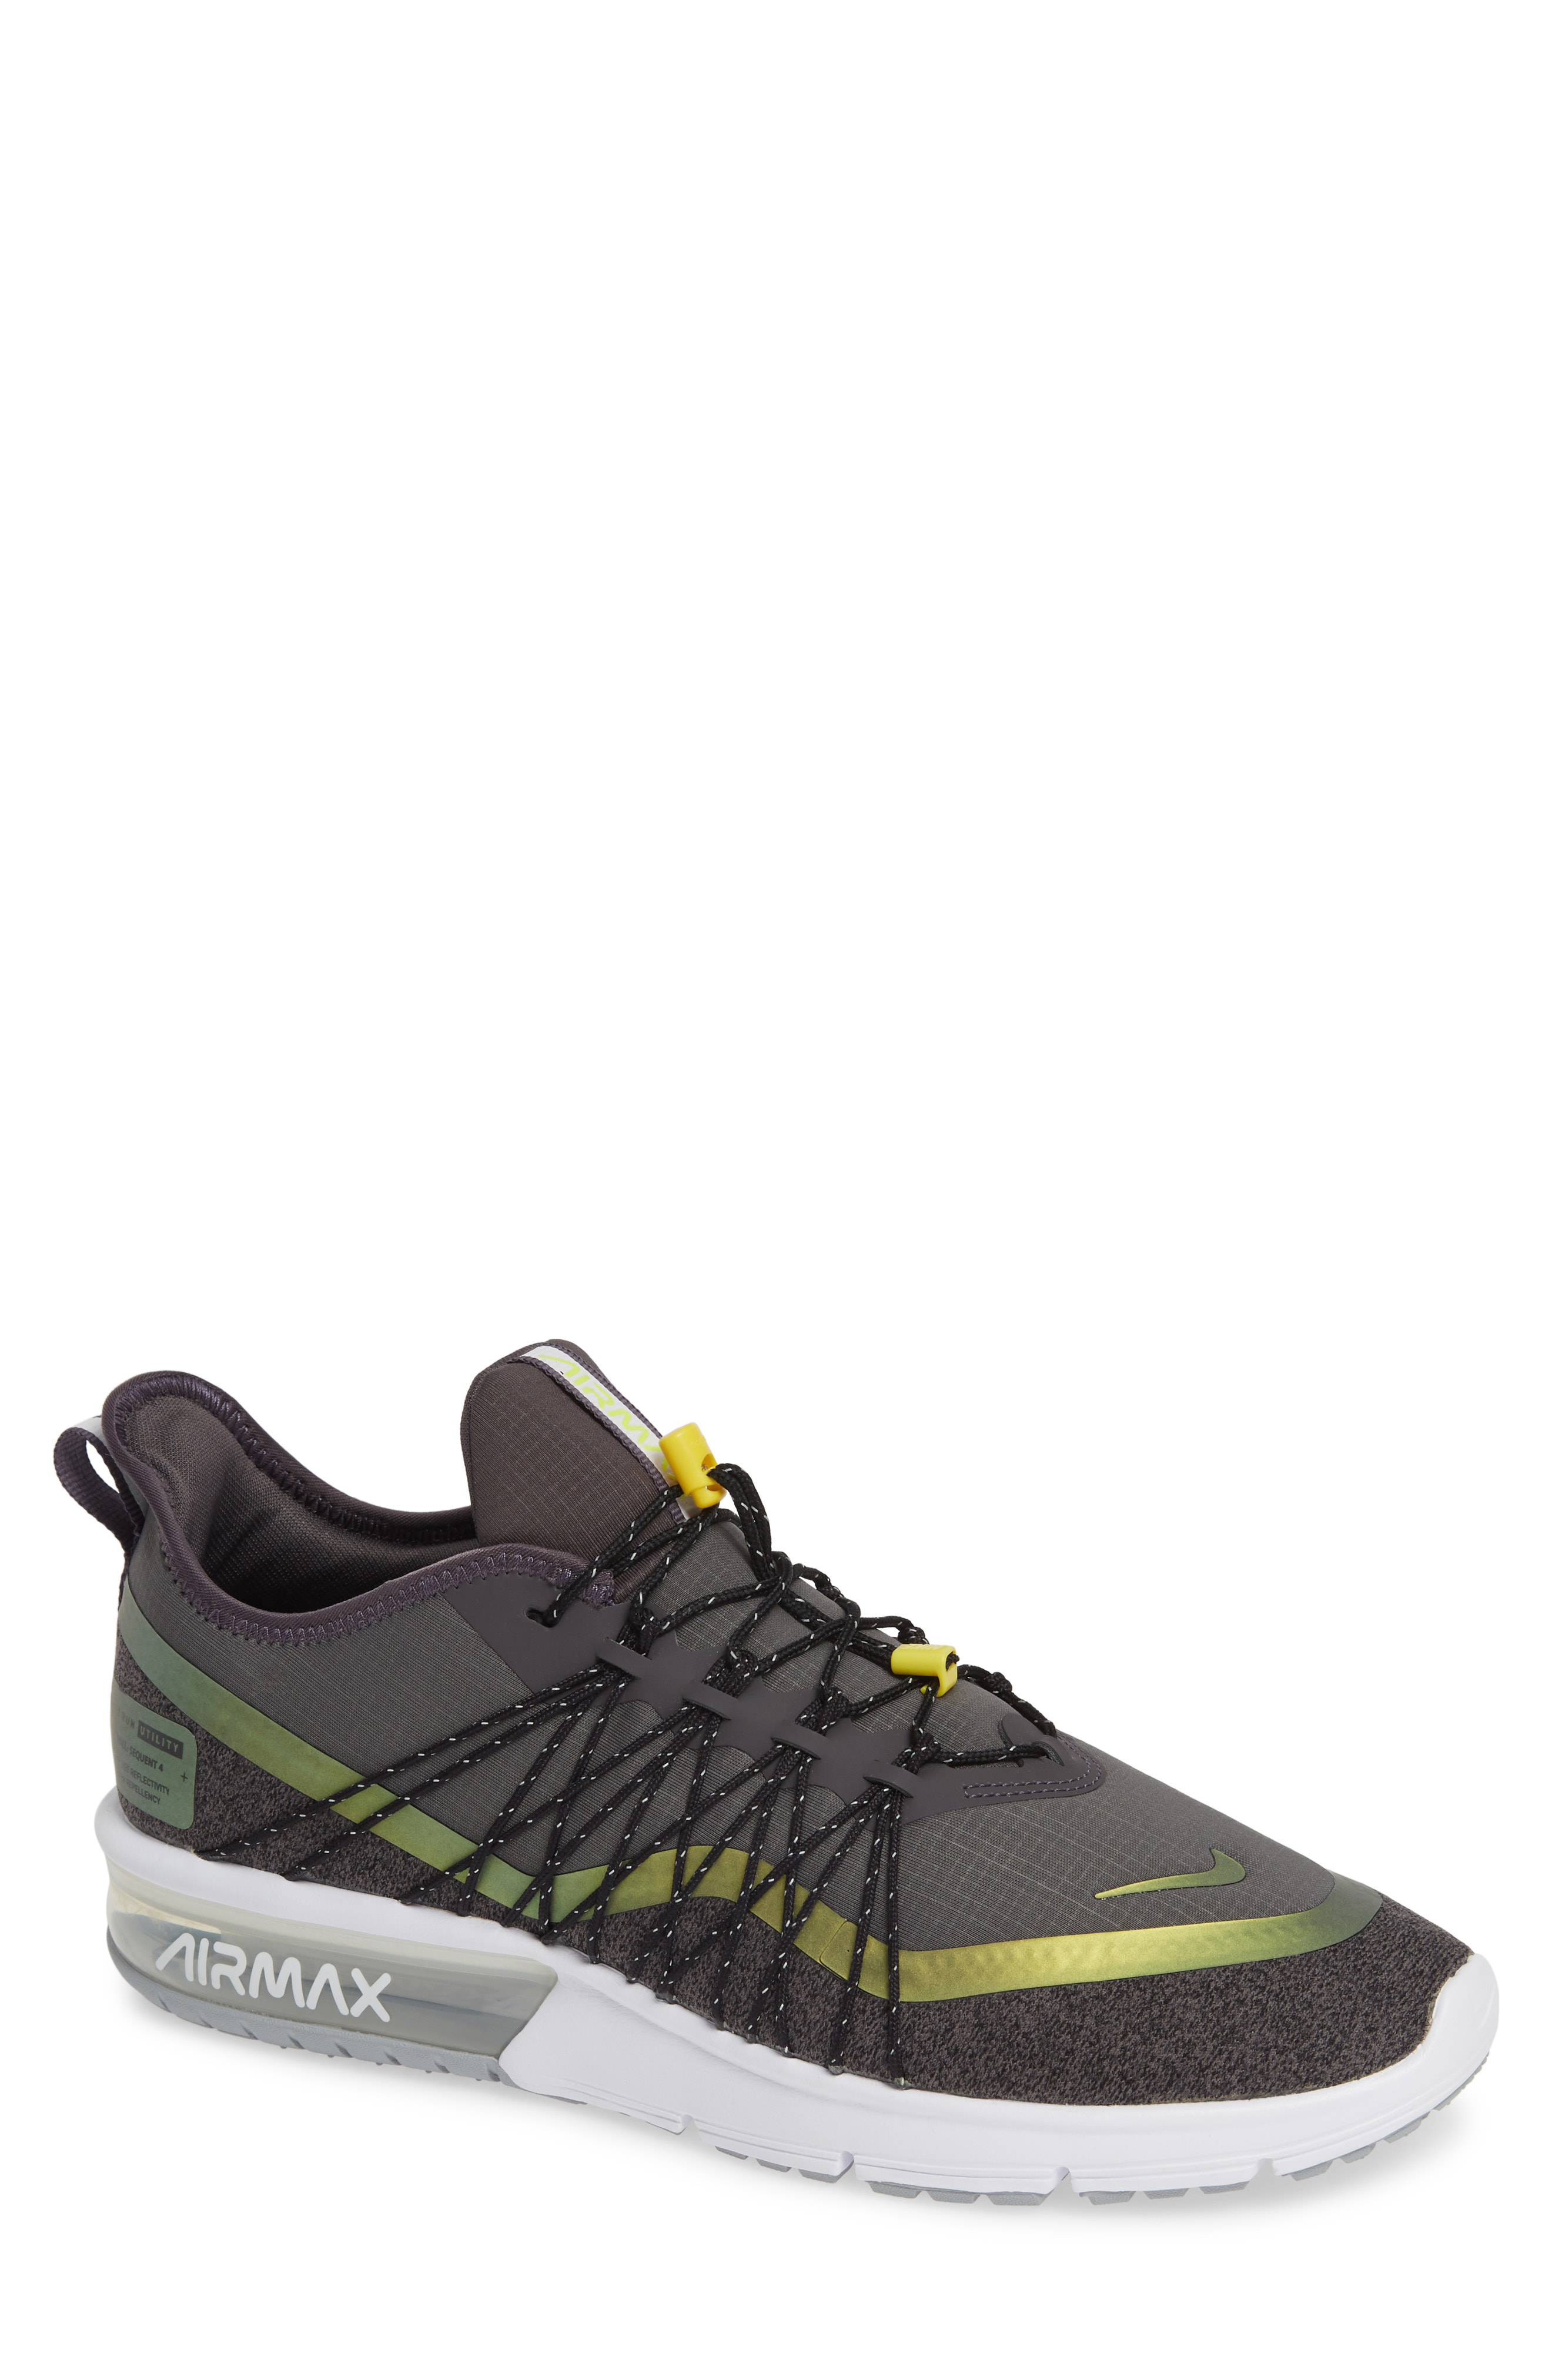 adacb2a27c Select Size. Store Status Price. Nike Air Max Sequent 4 Utility Running  Shoe In Thunder Grey/ Volt